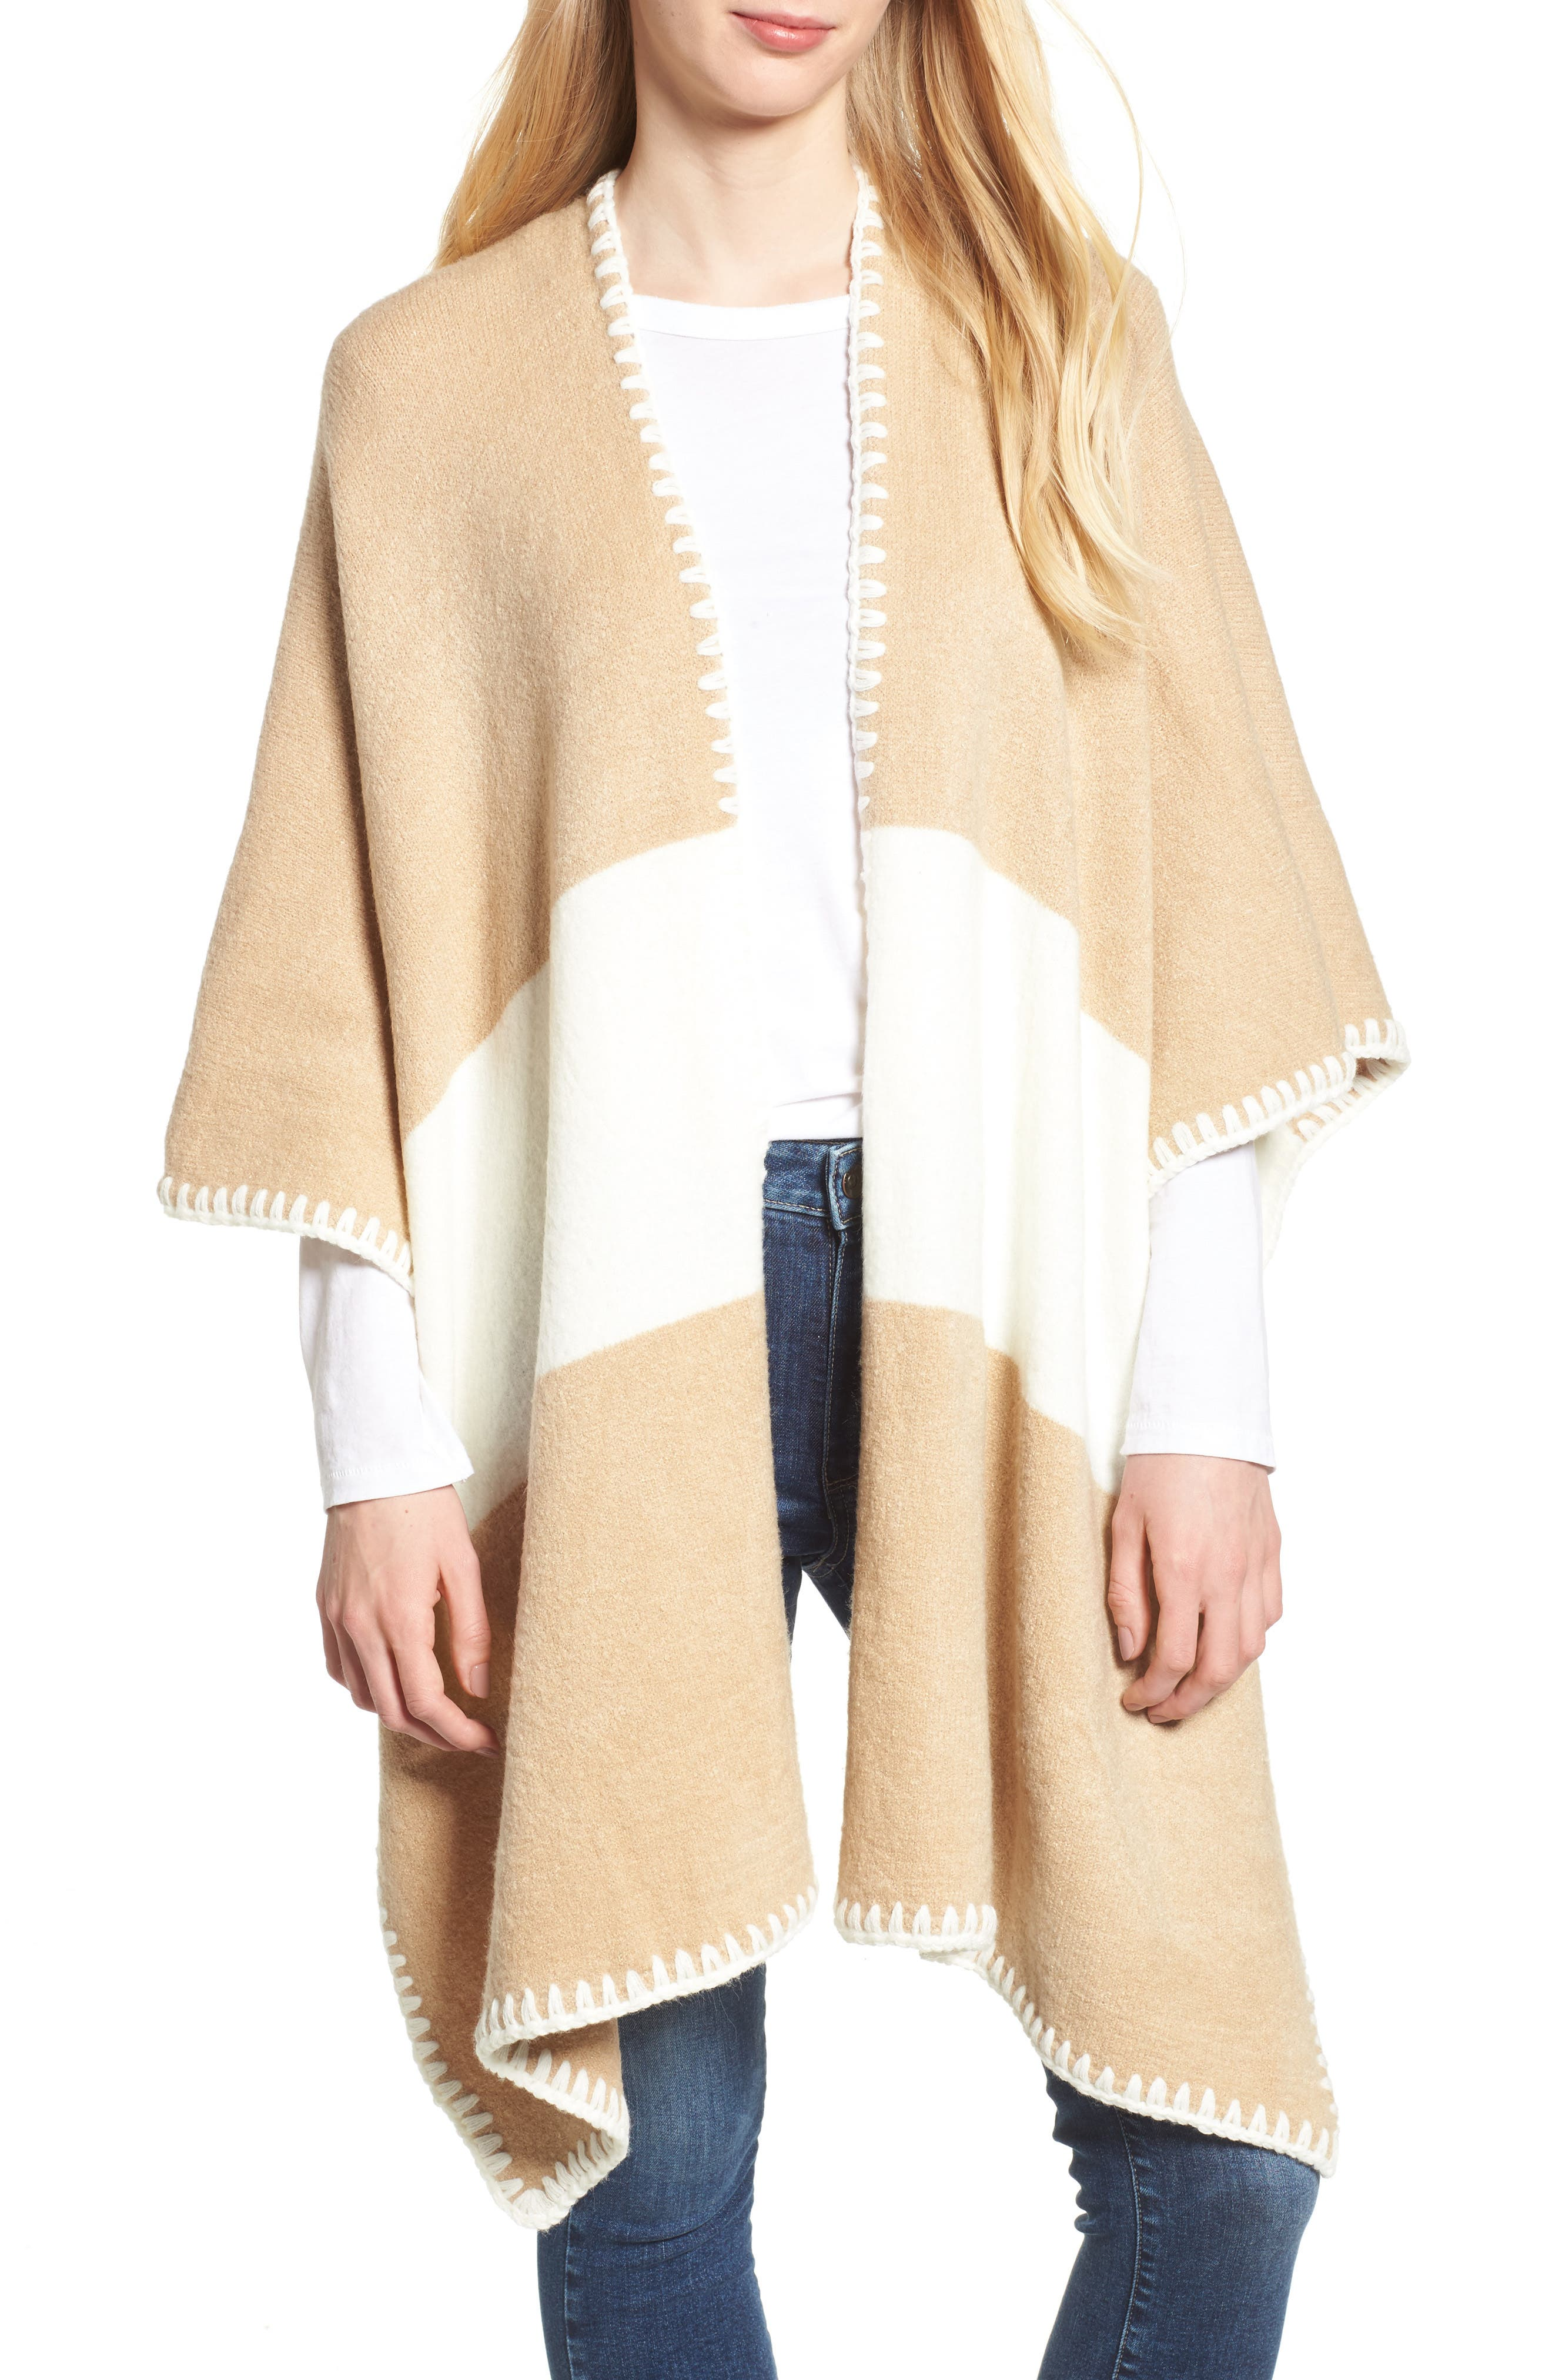 Bishop + Young Whipstitched Poncho,                             Main thumbnail 1, color,                             Camel